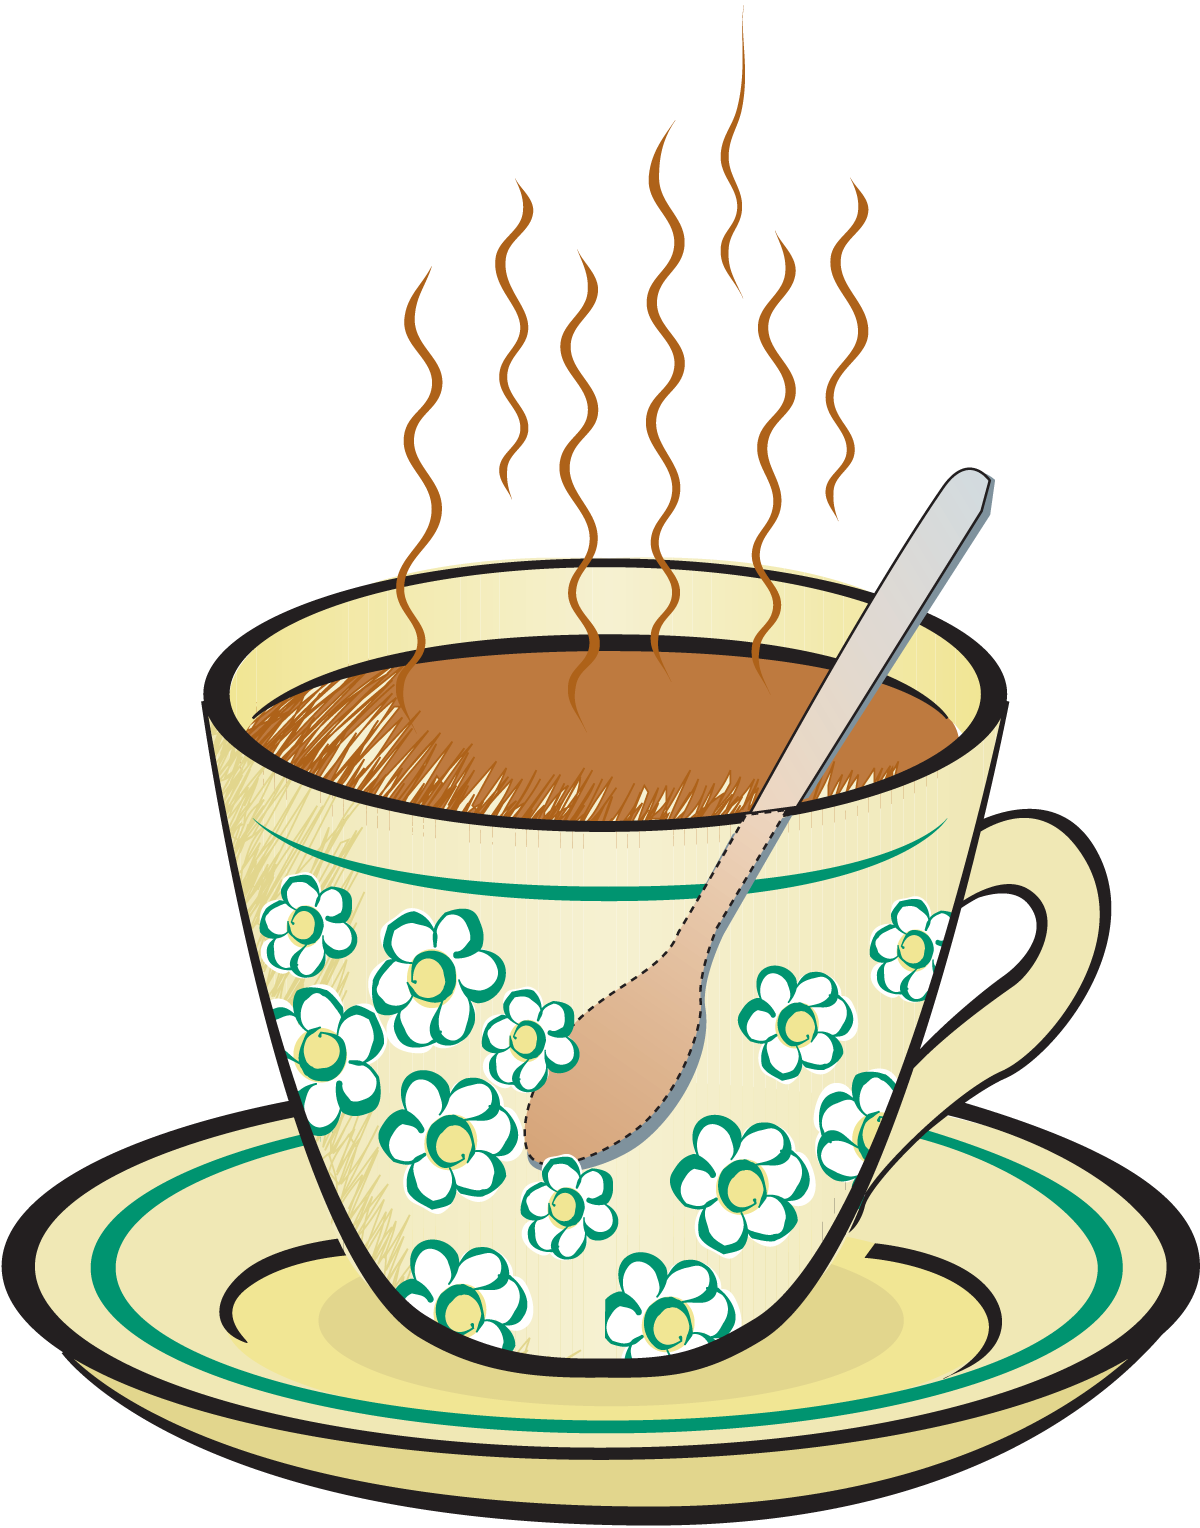 Teacup clipart hot and cold Exchangers Dairy Heat Processing Zoom